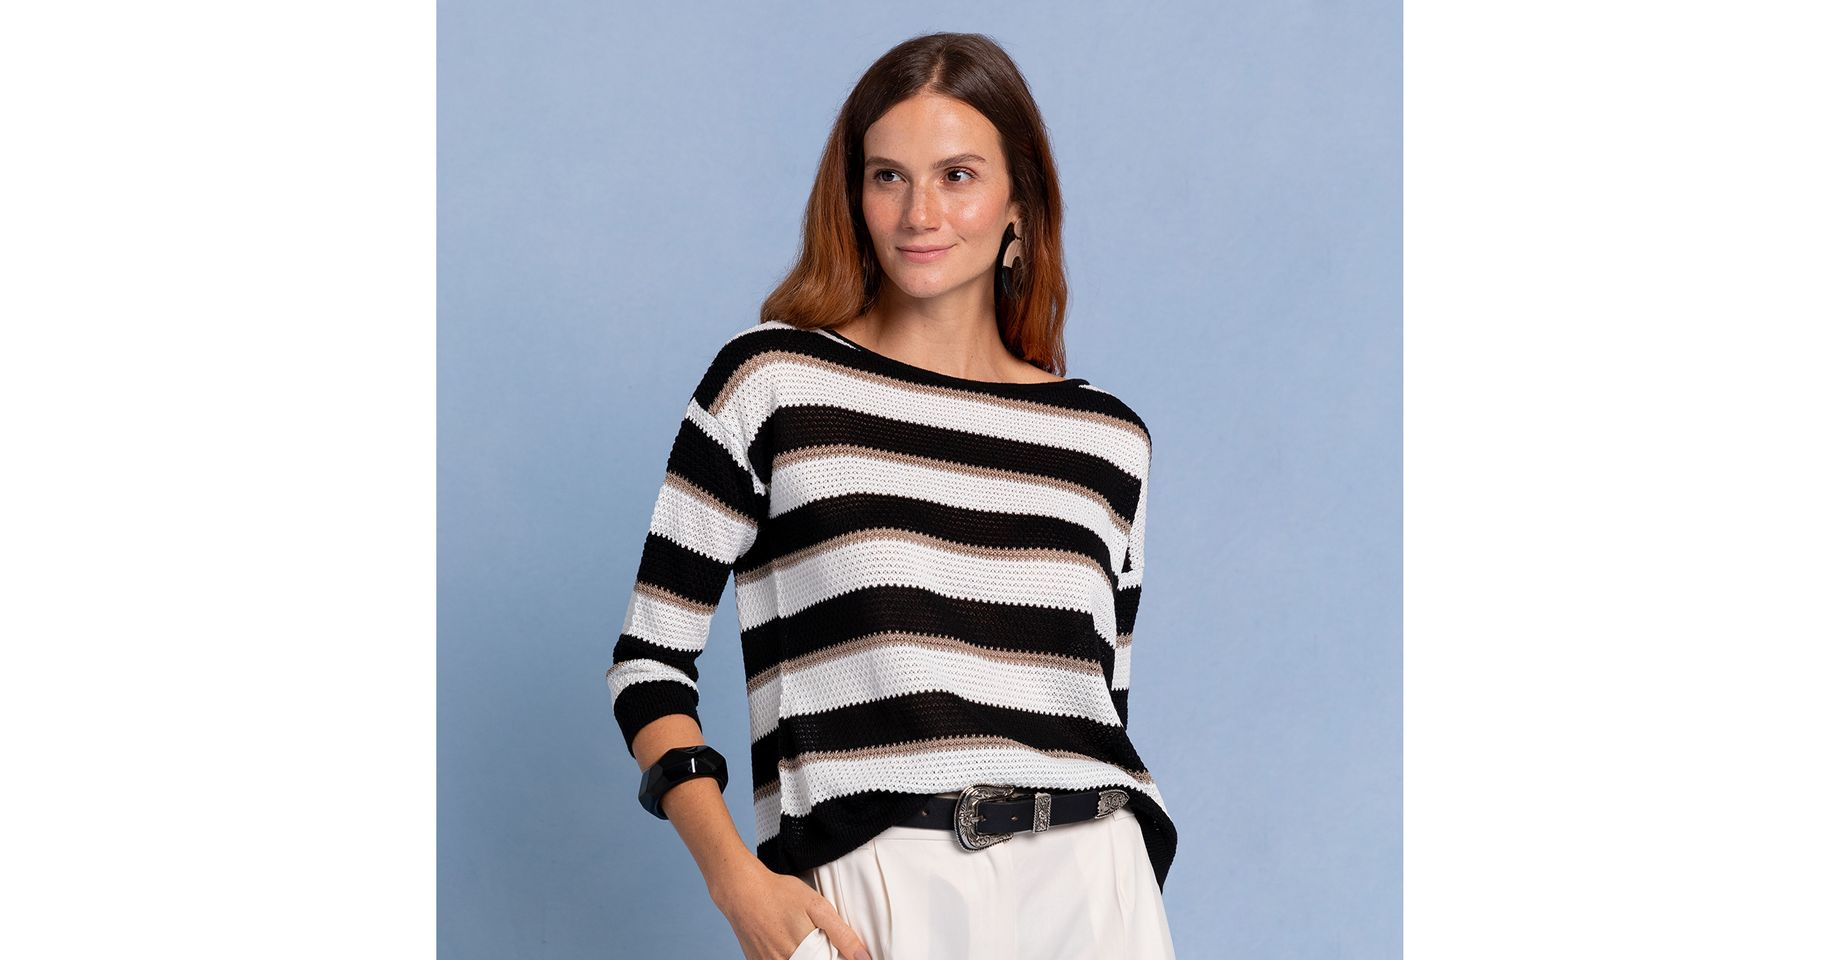 042401077_002_1-BLUSA-TRICOT-LOTHE